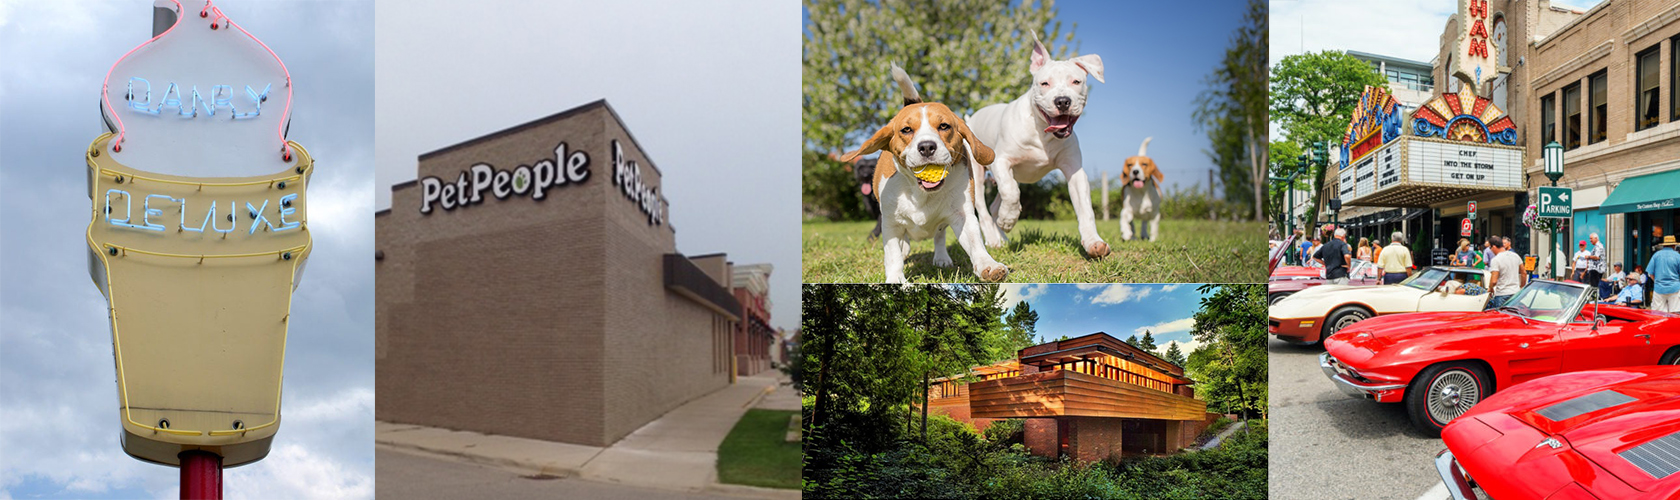 Collage of Birmingham PetPeople store location